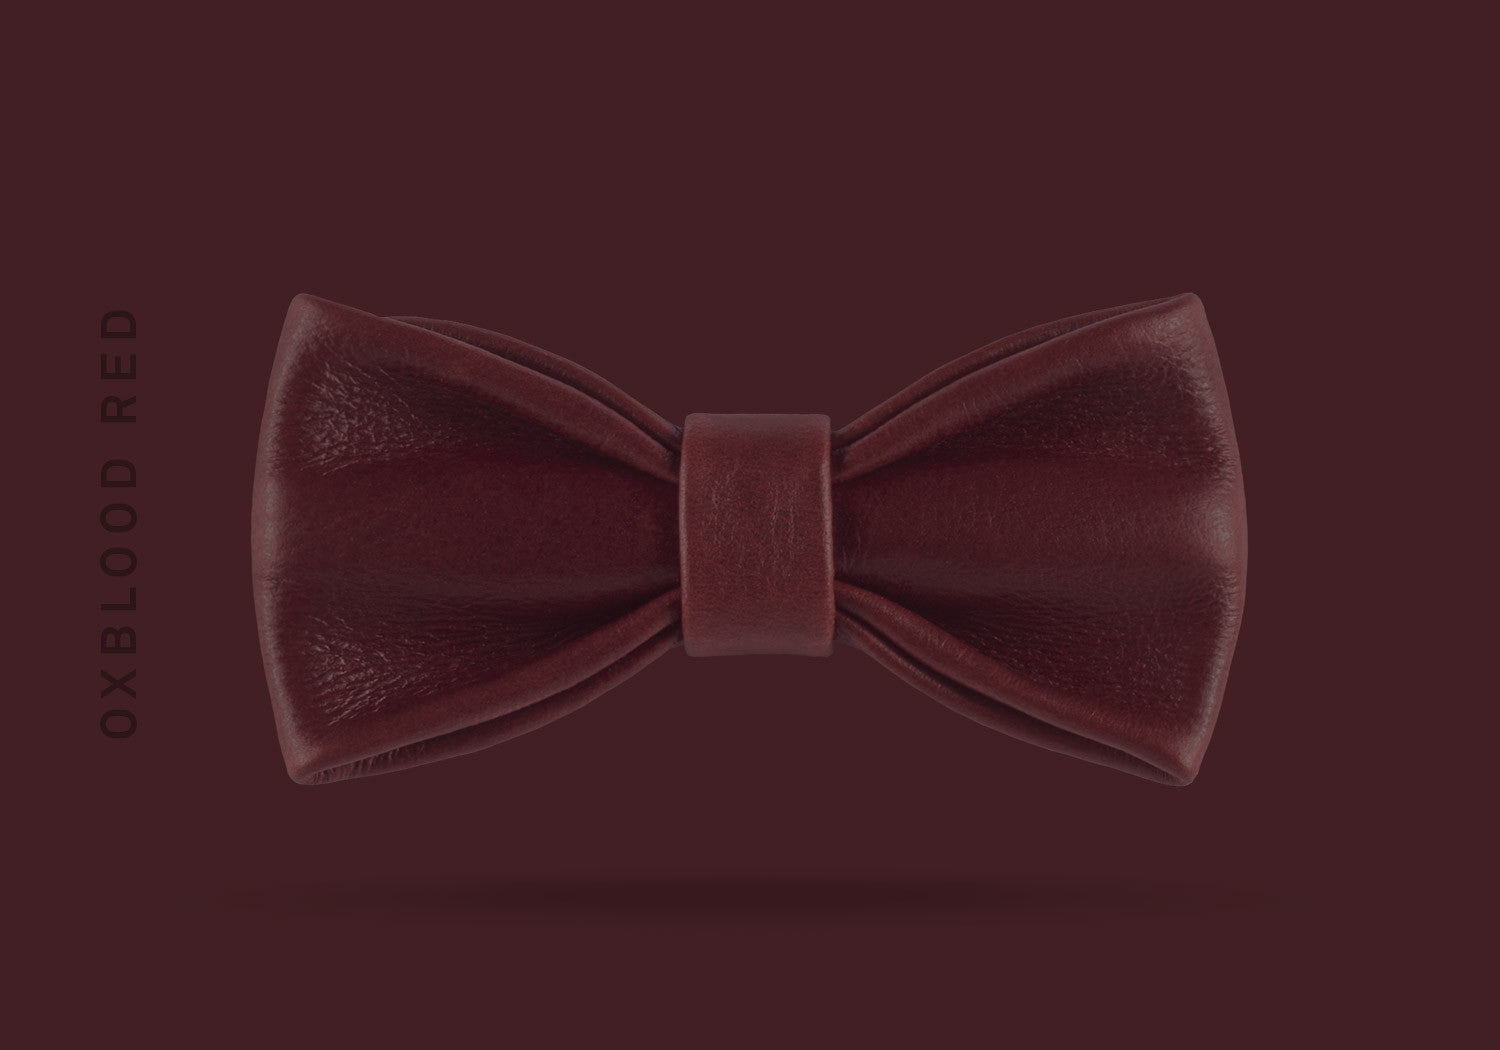 This oxblood red WEEF handmade leather bow is a great present or gift idea for dapper and stylish gentlemen for fathers day, valentines day or Christmas.